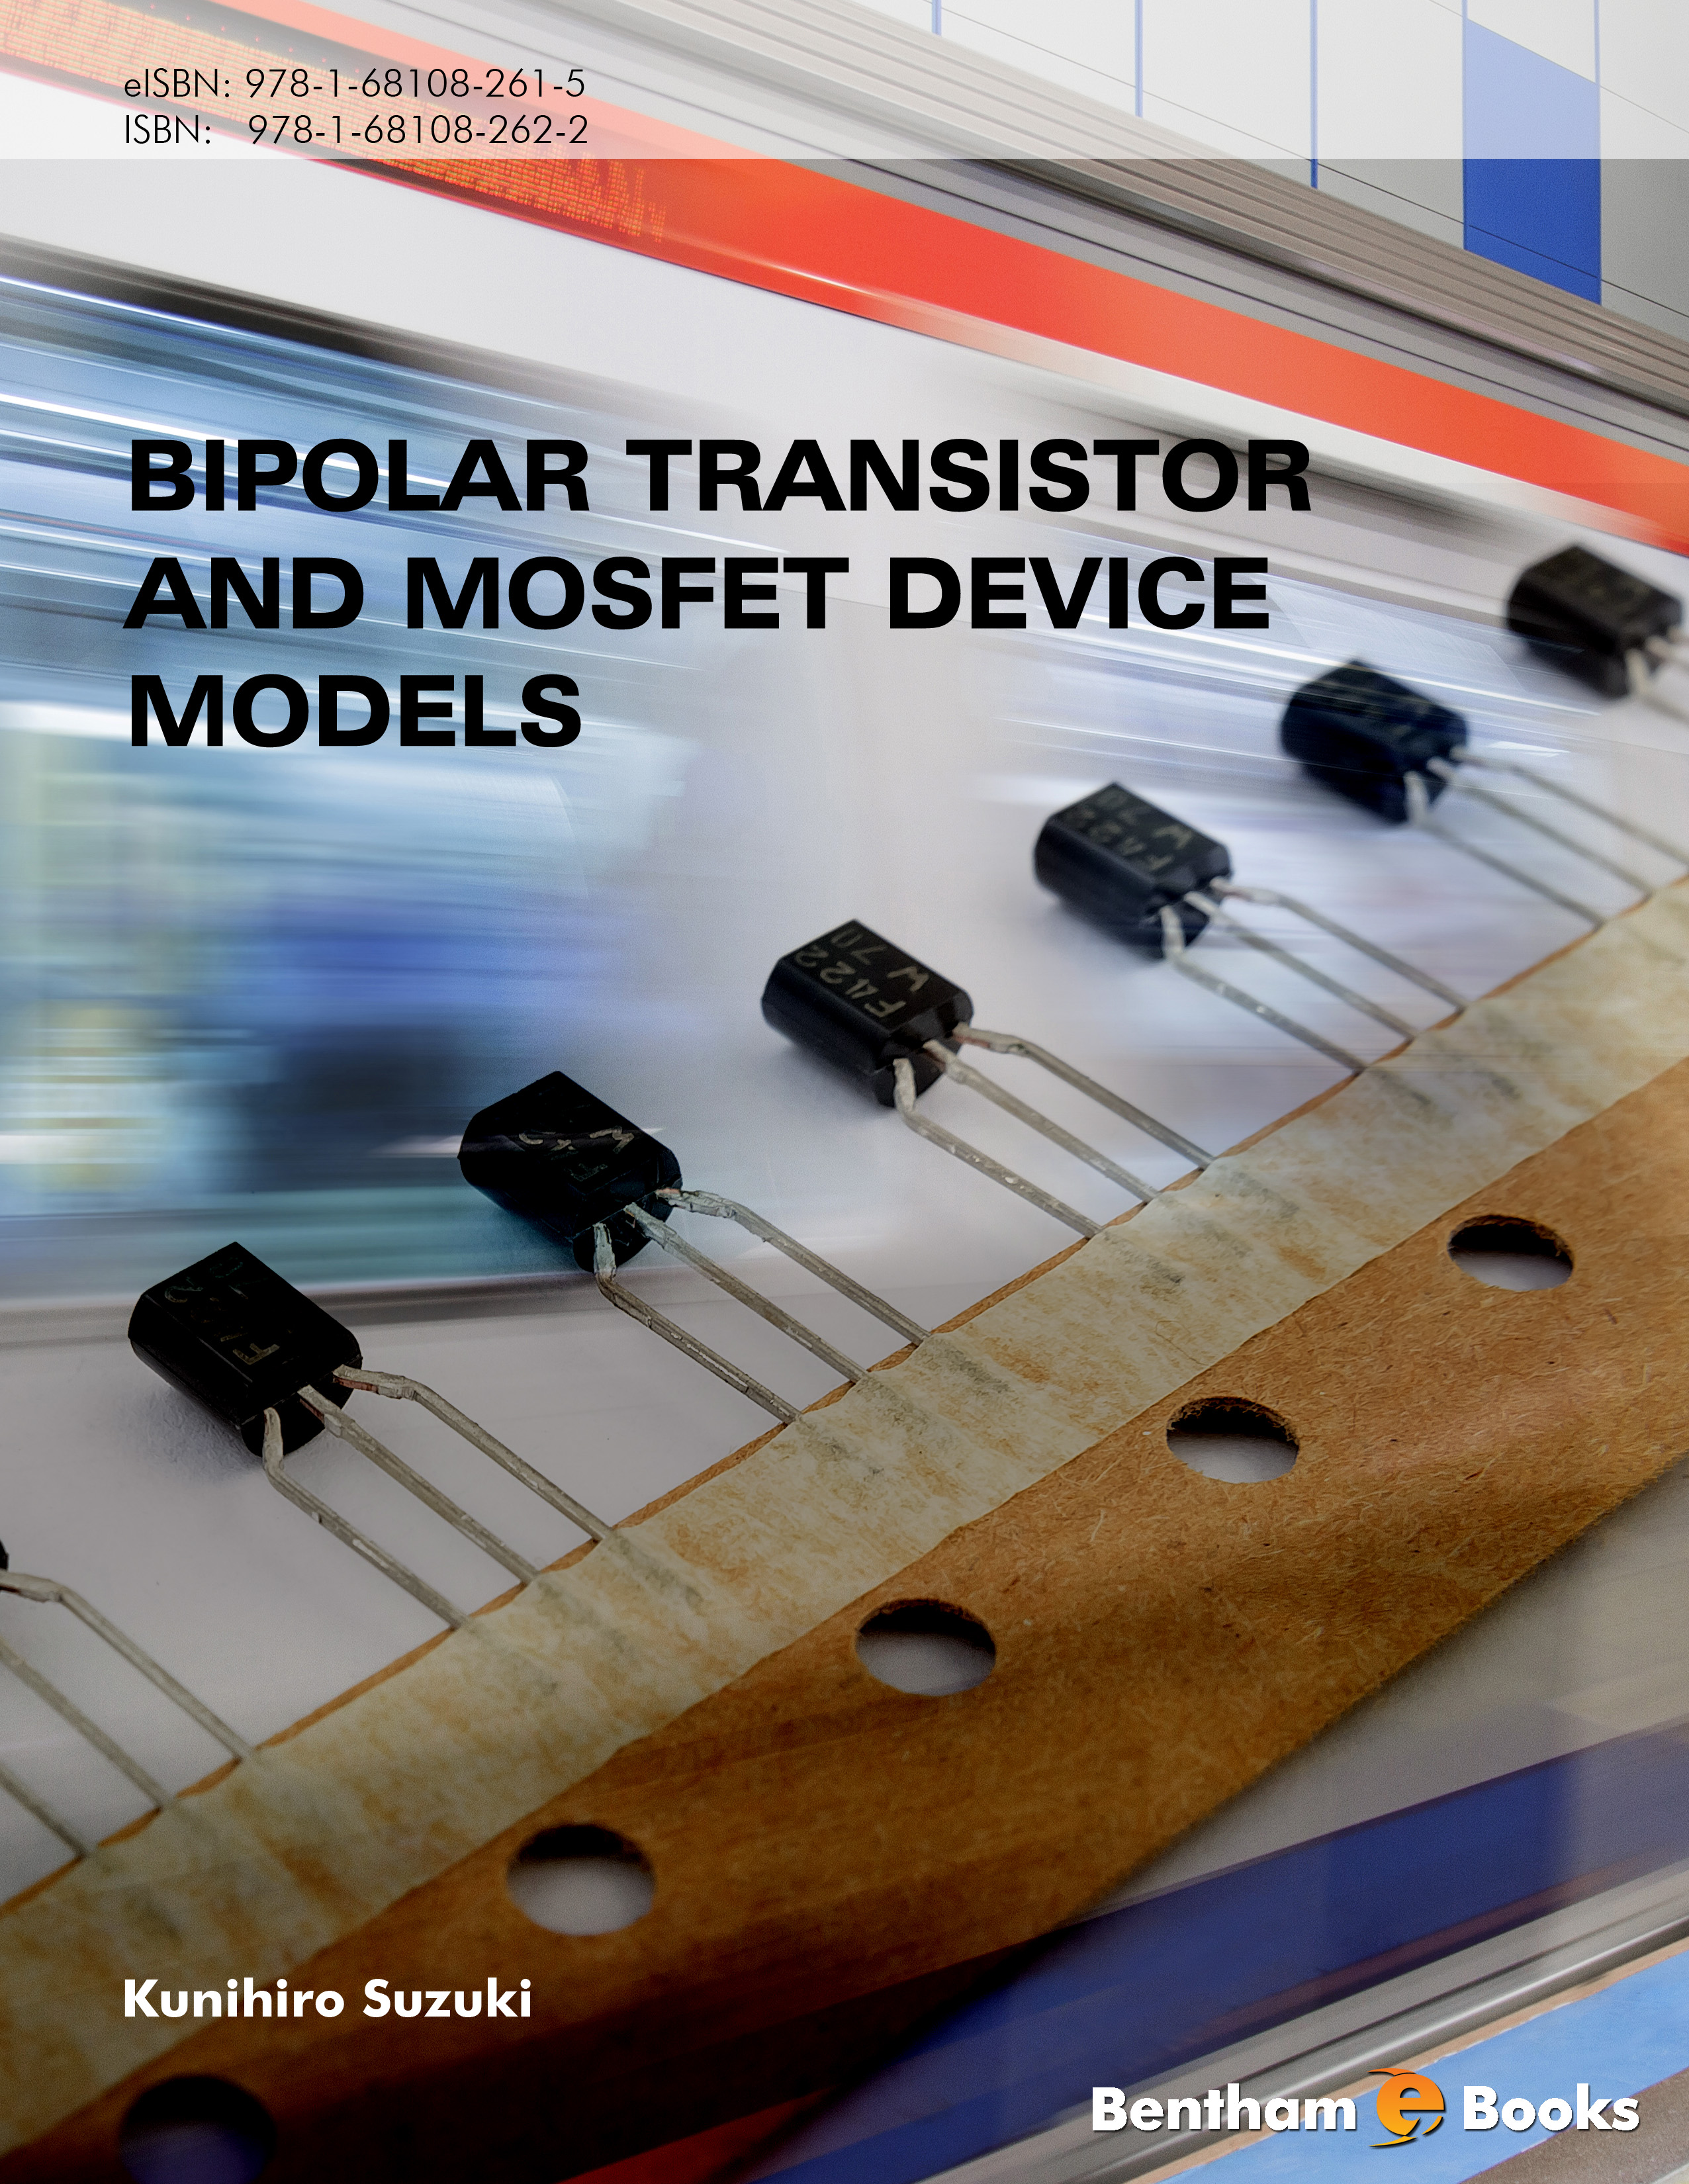 Bipolar Transistor and MOSFET Device Models